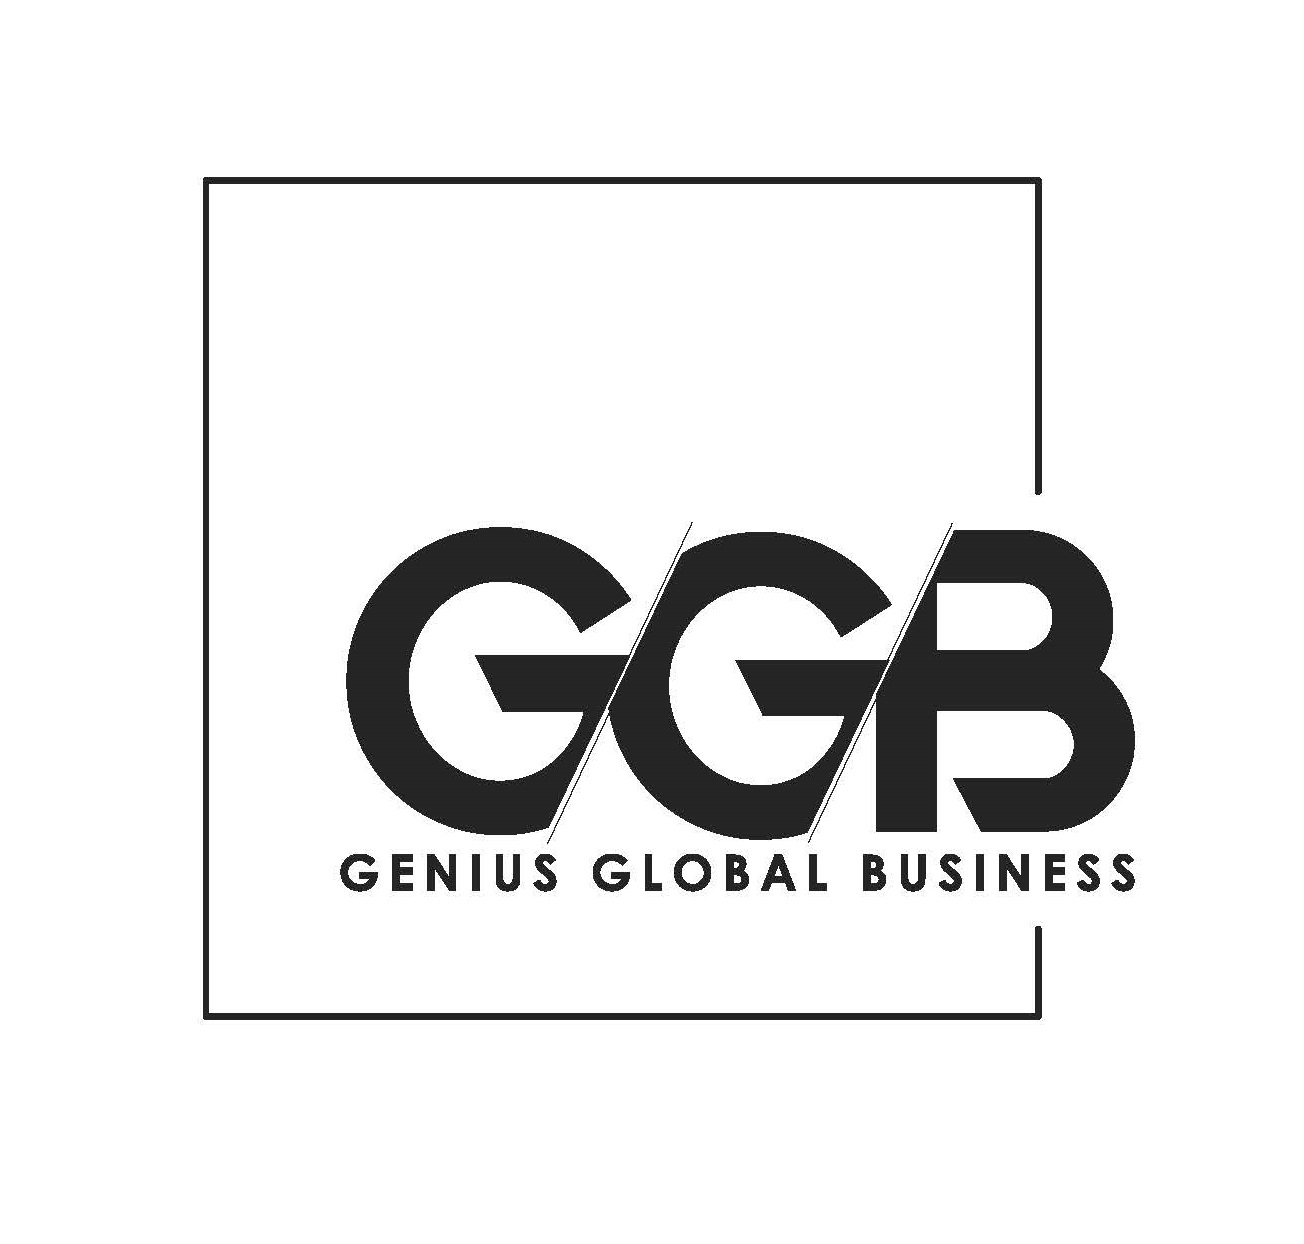 GENIUS GLOBAL BUSINESS